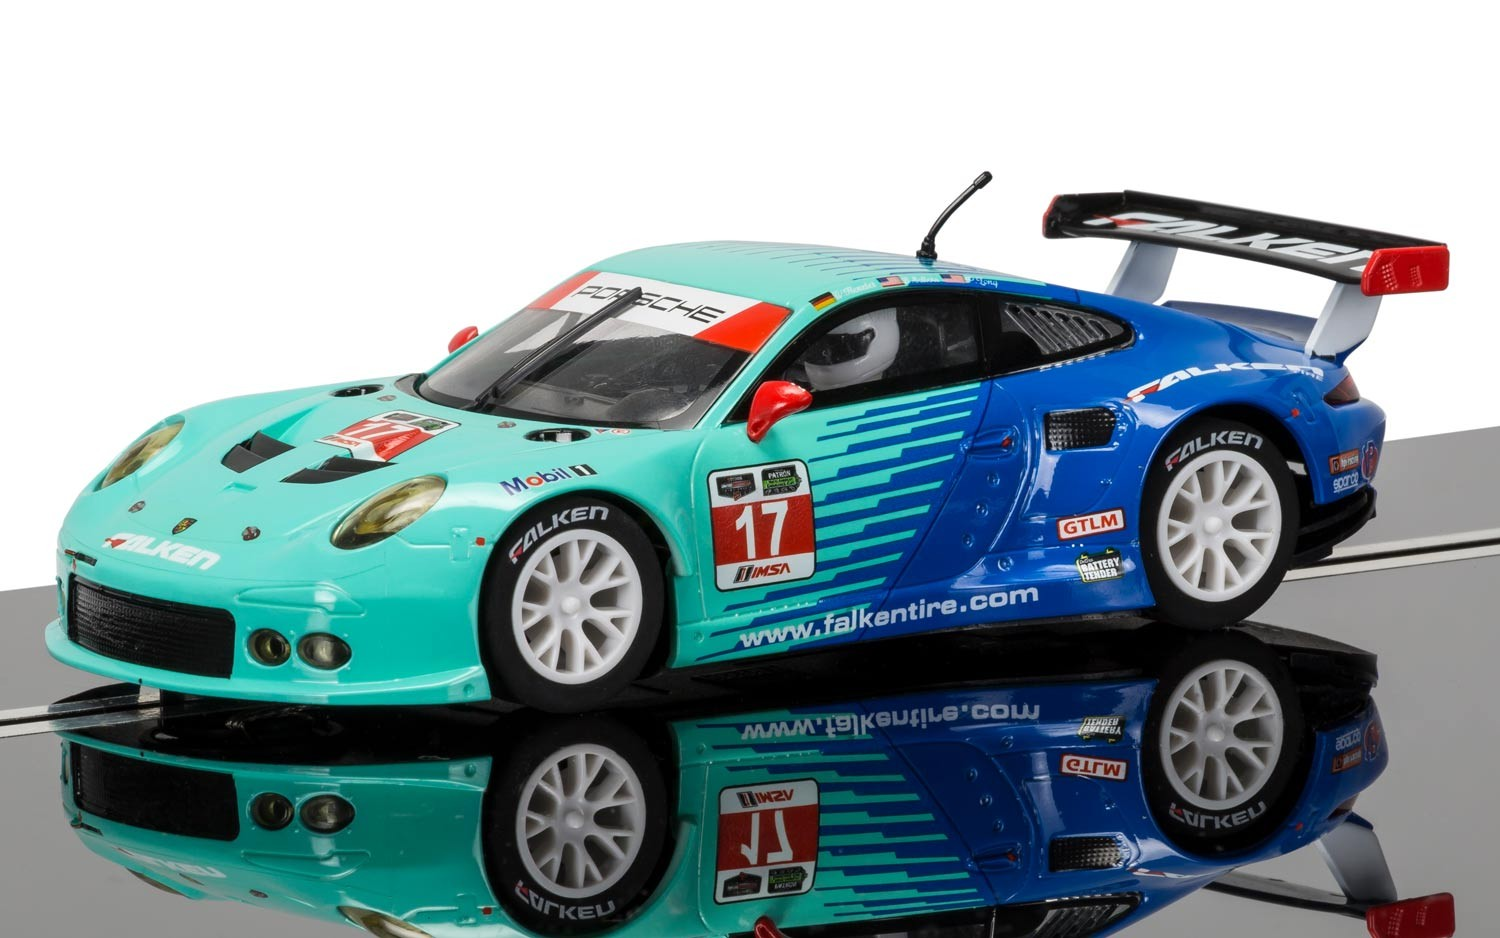 Porsche 911 RSR, Falken Tire #17 1/32 Slot Car